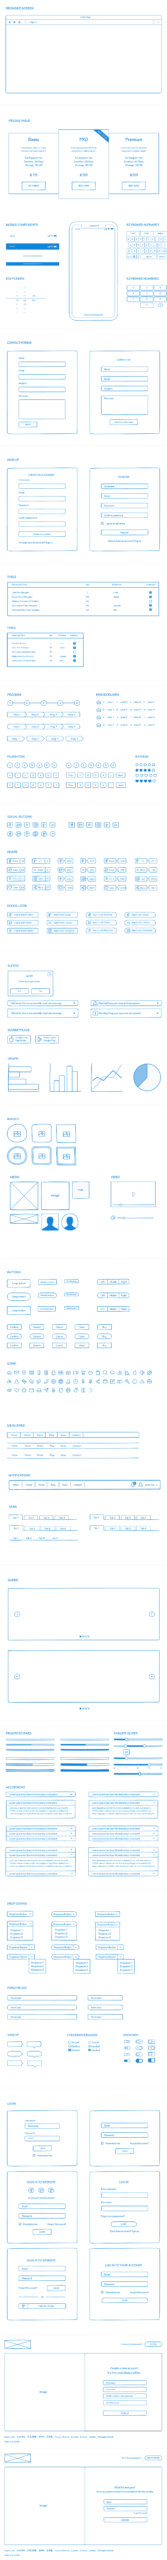 Hand Draw Wireframe UI Kit for Adobe XD from UIGarage